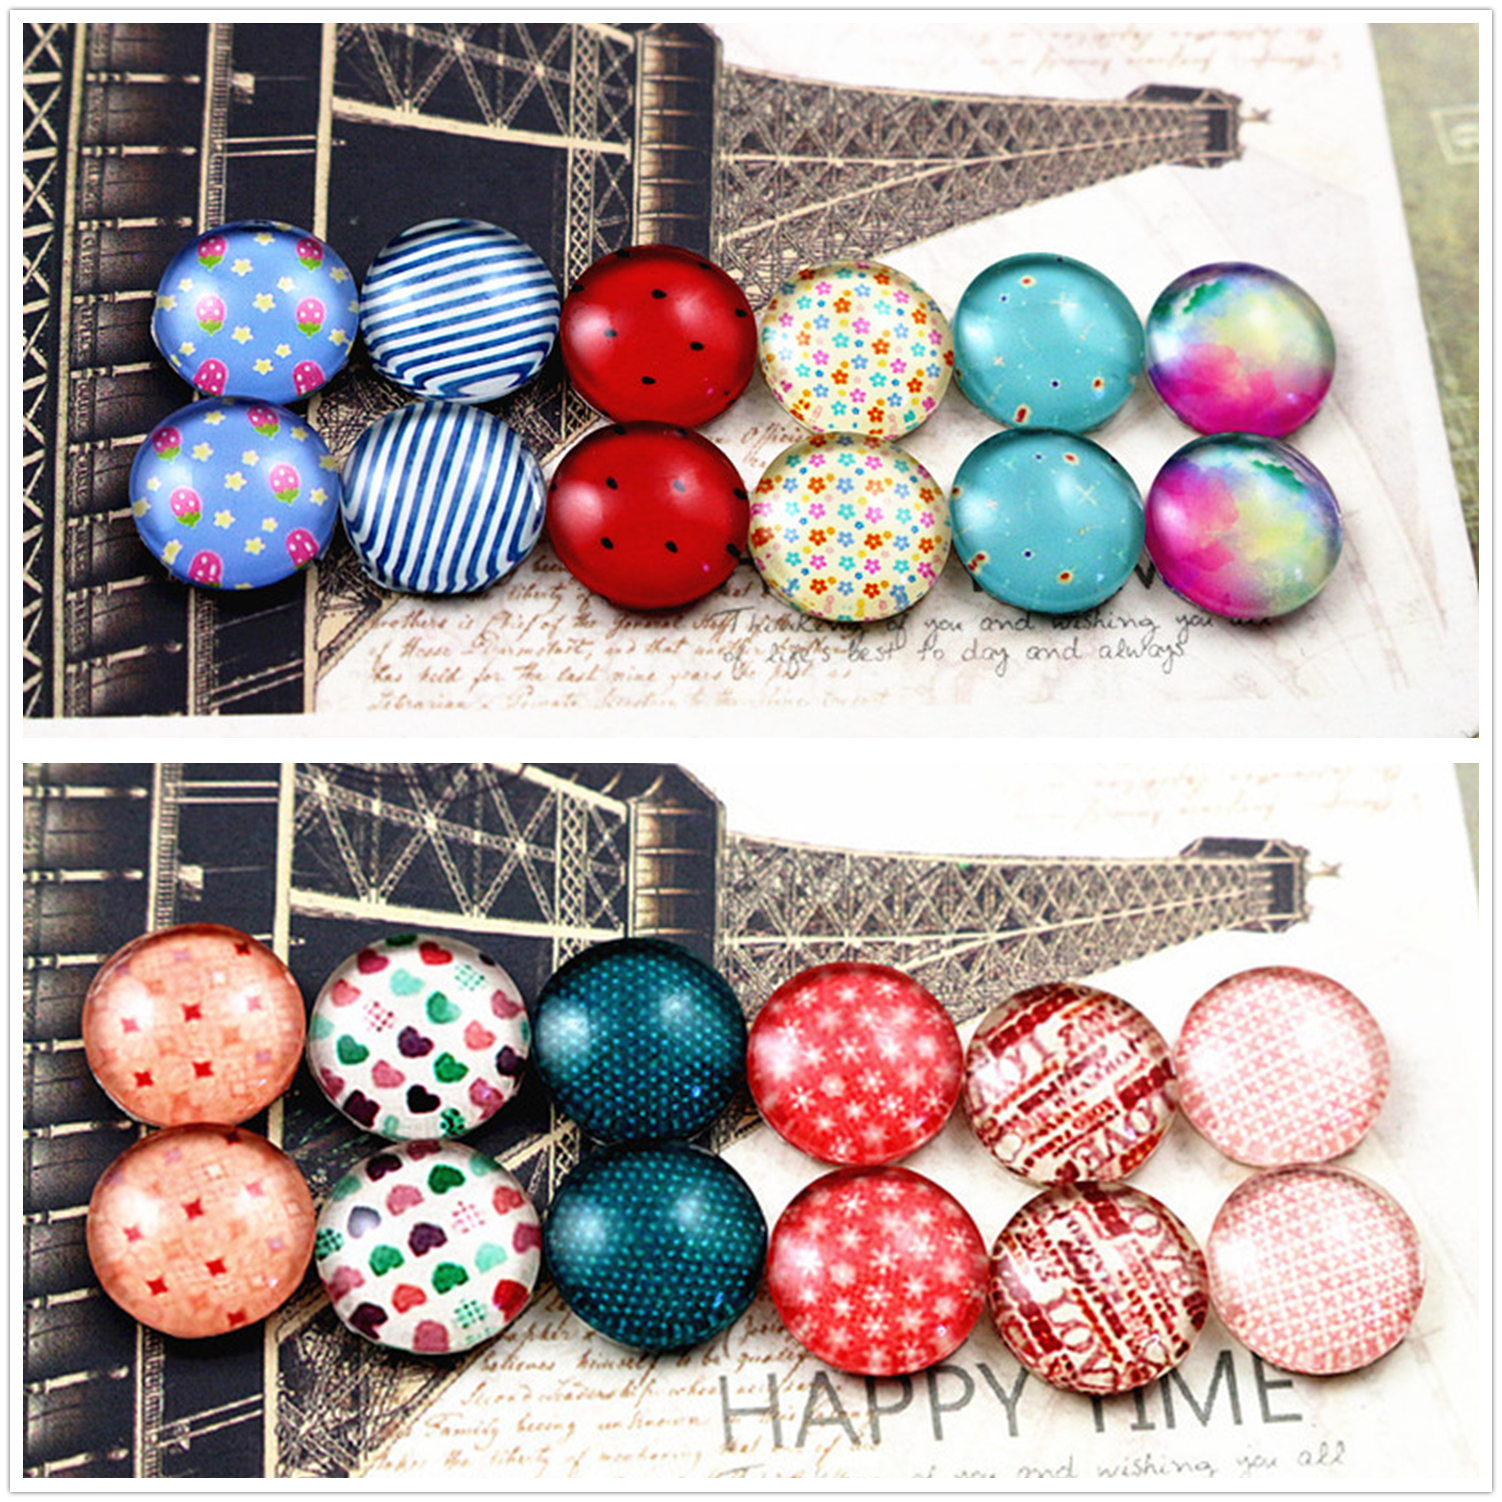 12pcs/lot (One Set) Two Style 12mm Fashion Cute Series Handmade Glass Cabochons Pattern Domed Jewelry Accessories Supplies